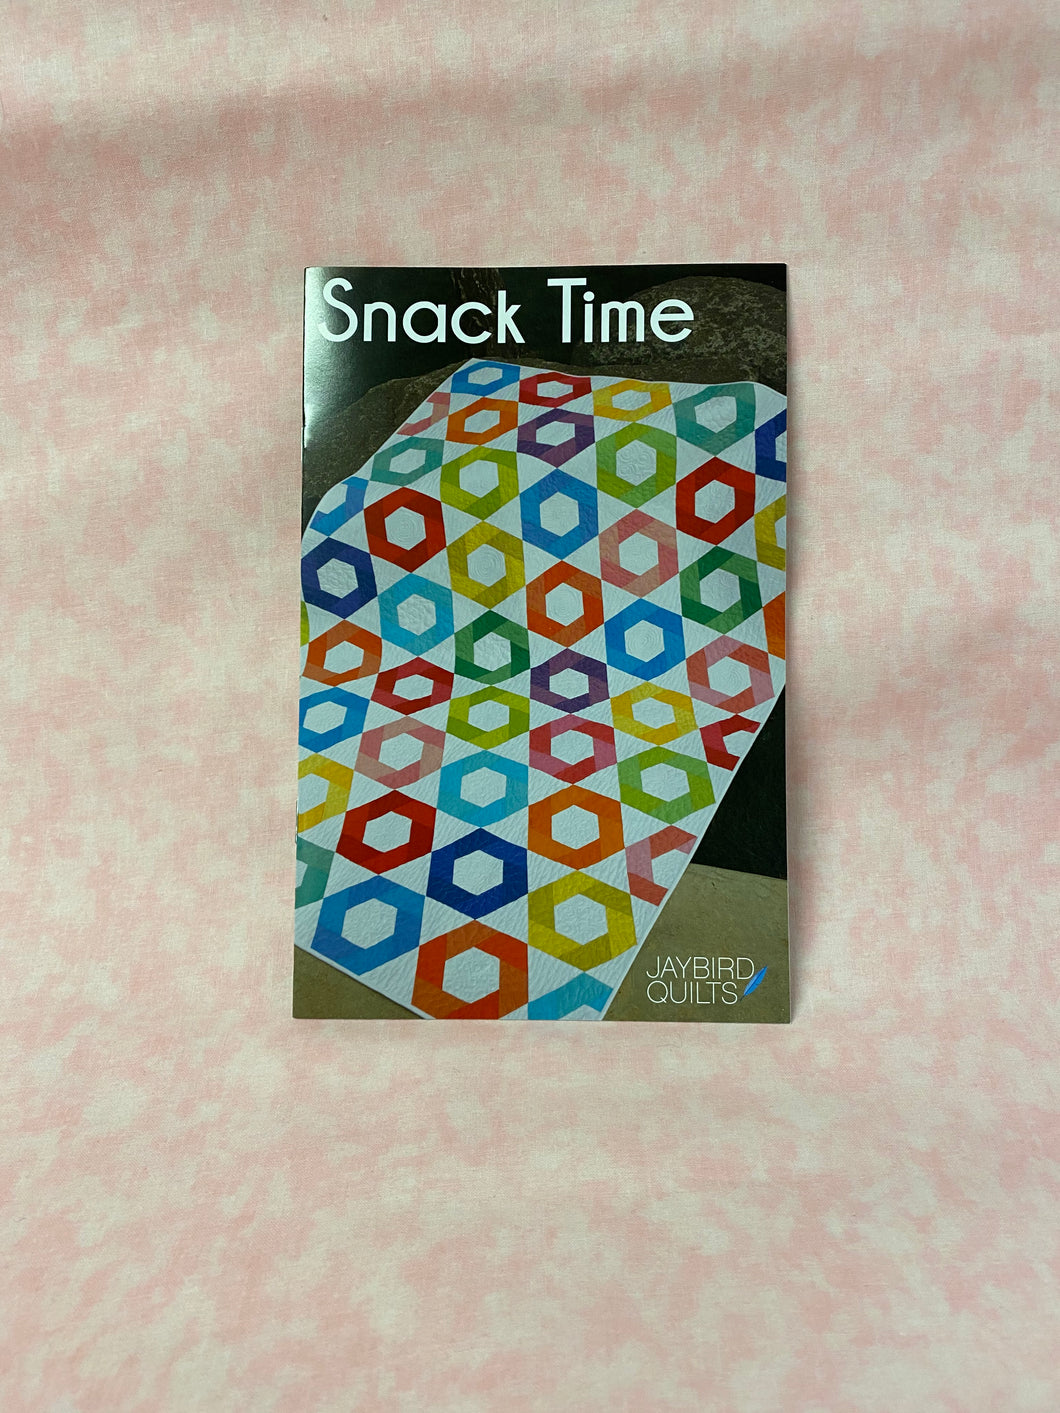 Jaybird Quilts Snack Time p29